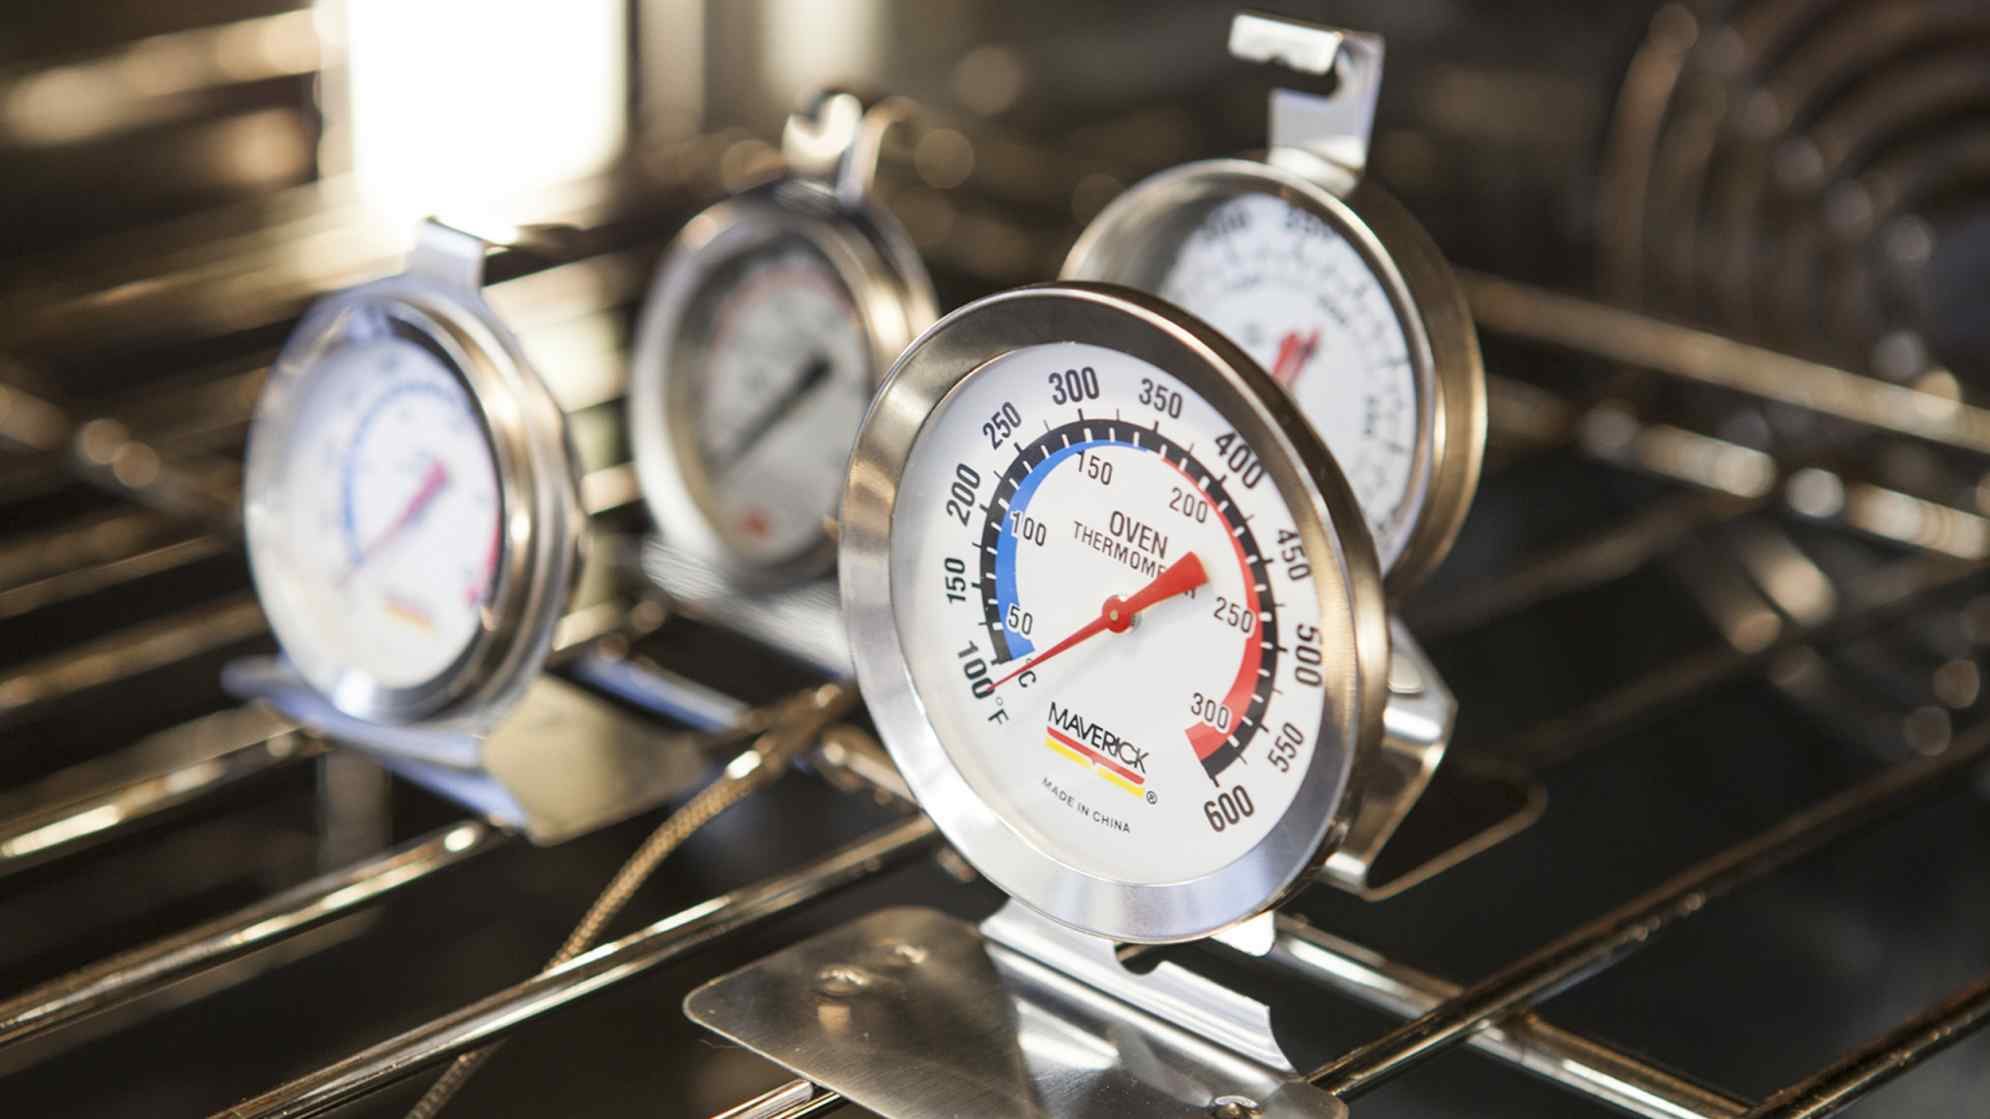 Watch Every Step. An oven thermometer ...